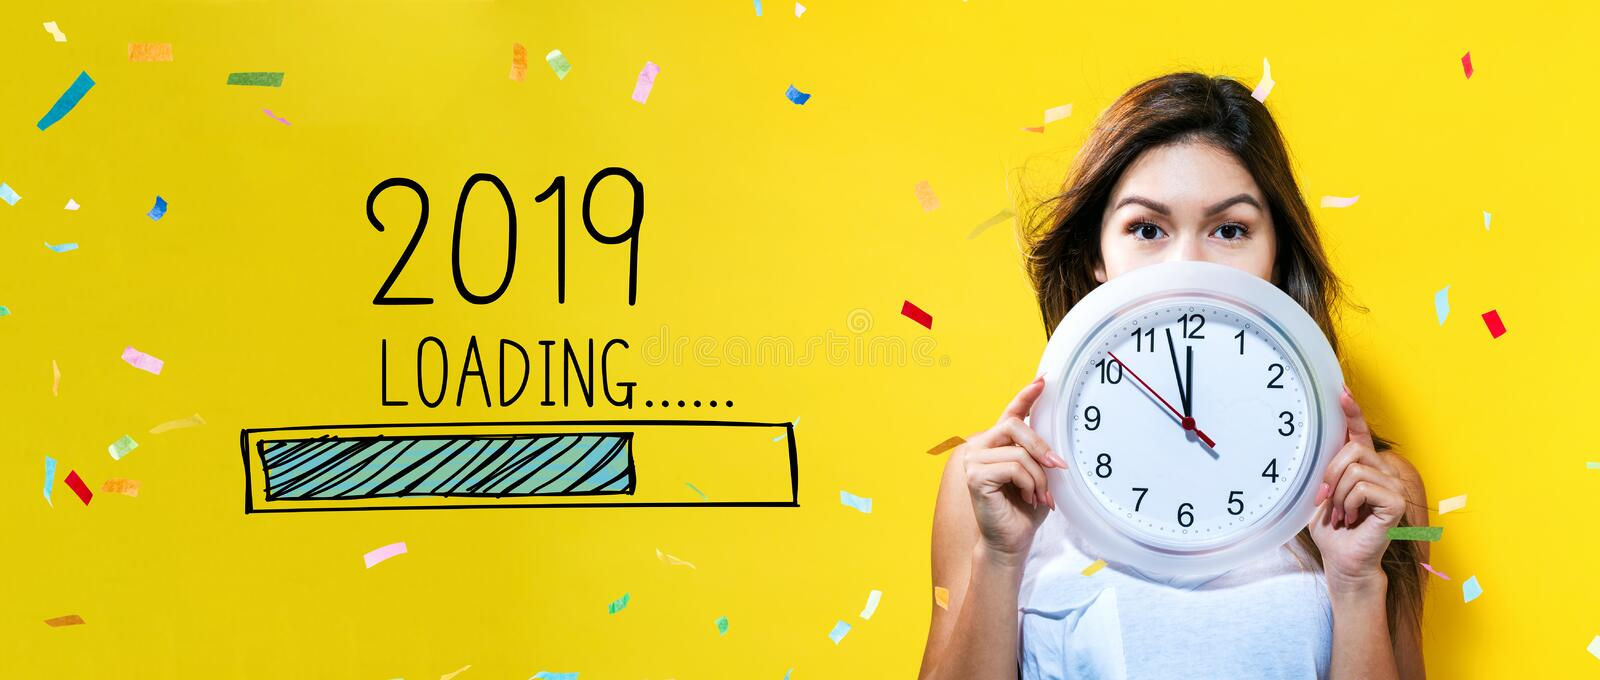 Loading new year 2019 with young woman holding a clock stock photography